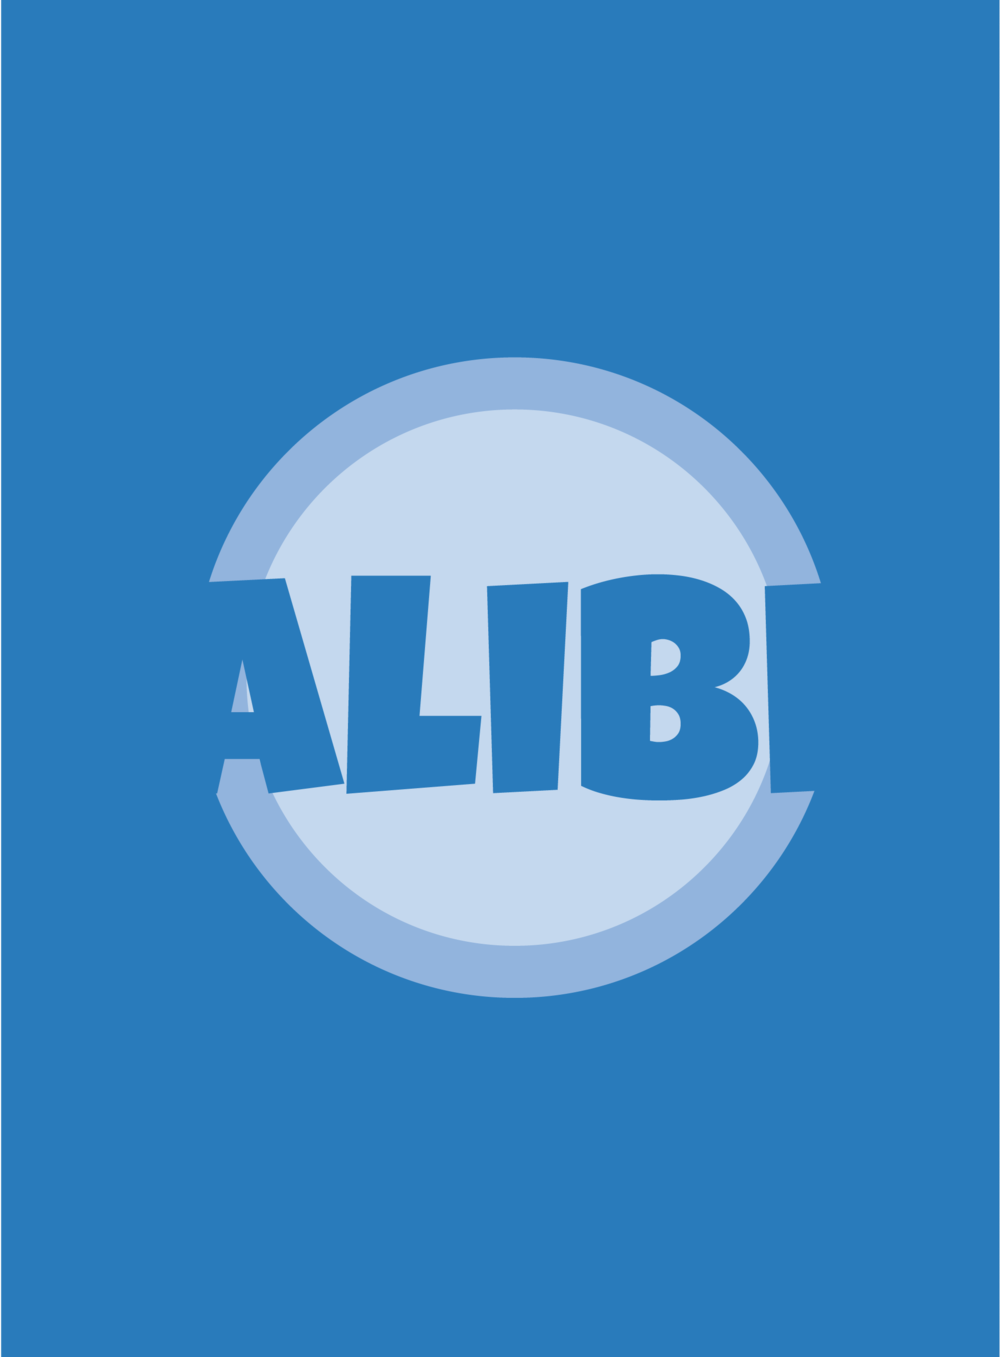 Logo for the card game Alibi, released 2016.